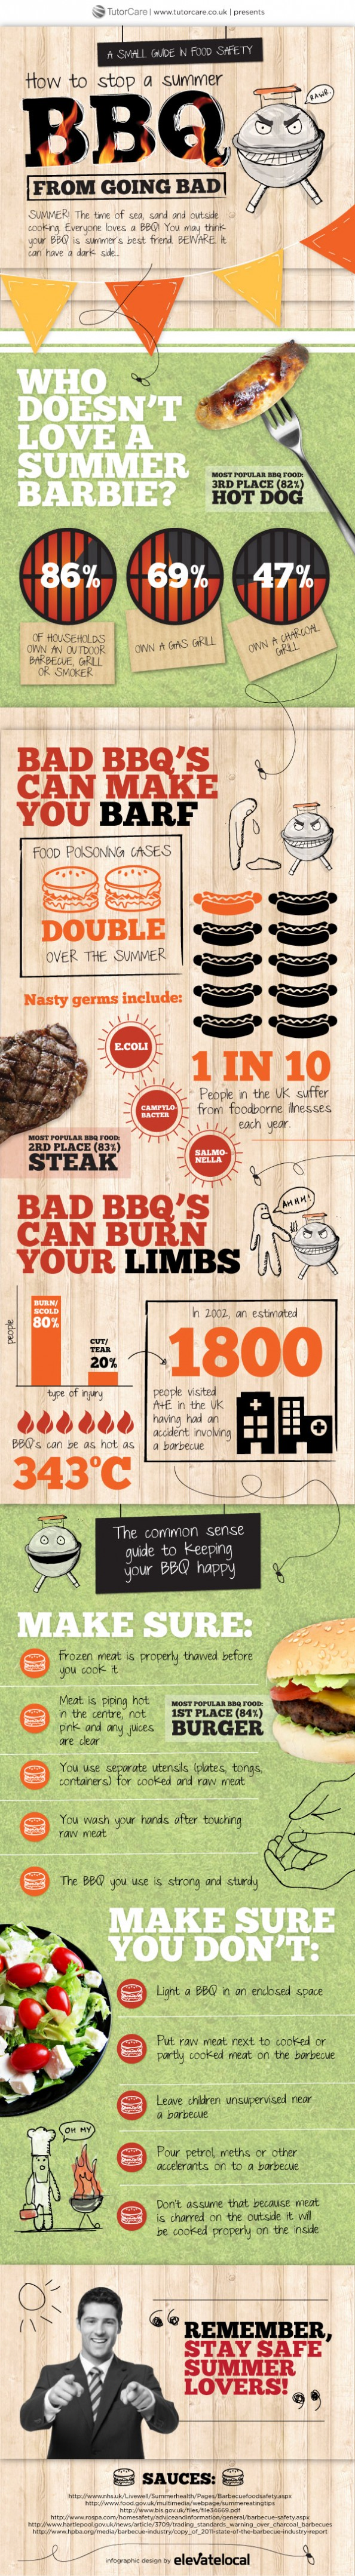 Home Page | Summer grilling, Healthy barbecue, Grilling tips